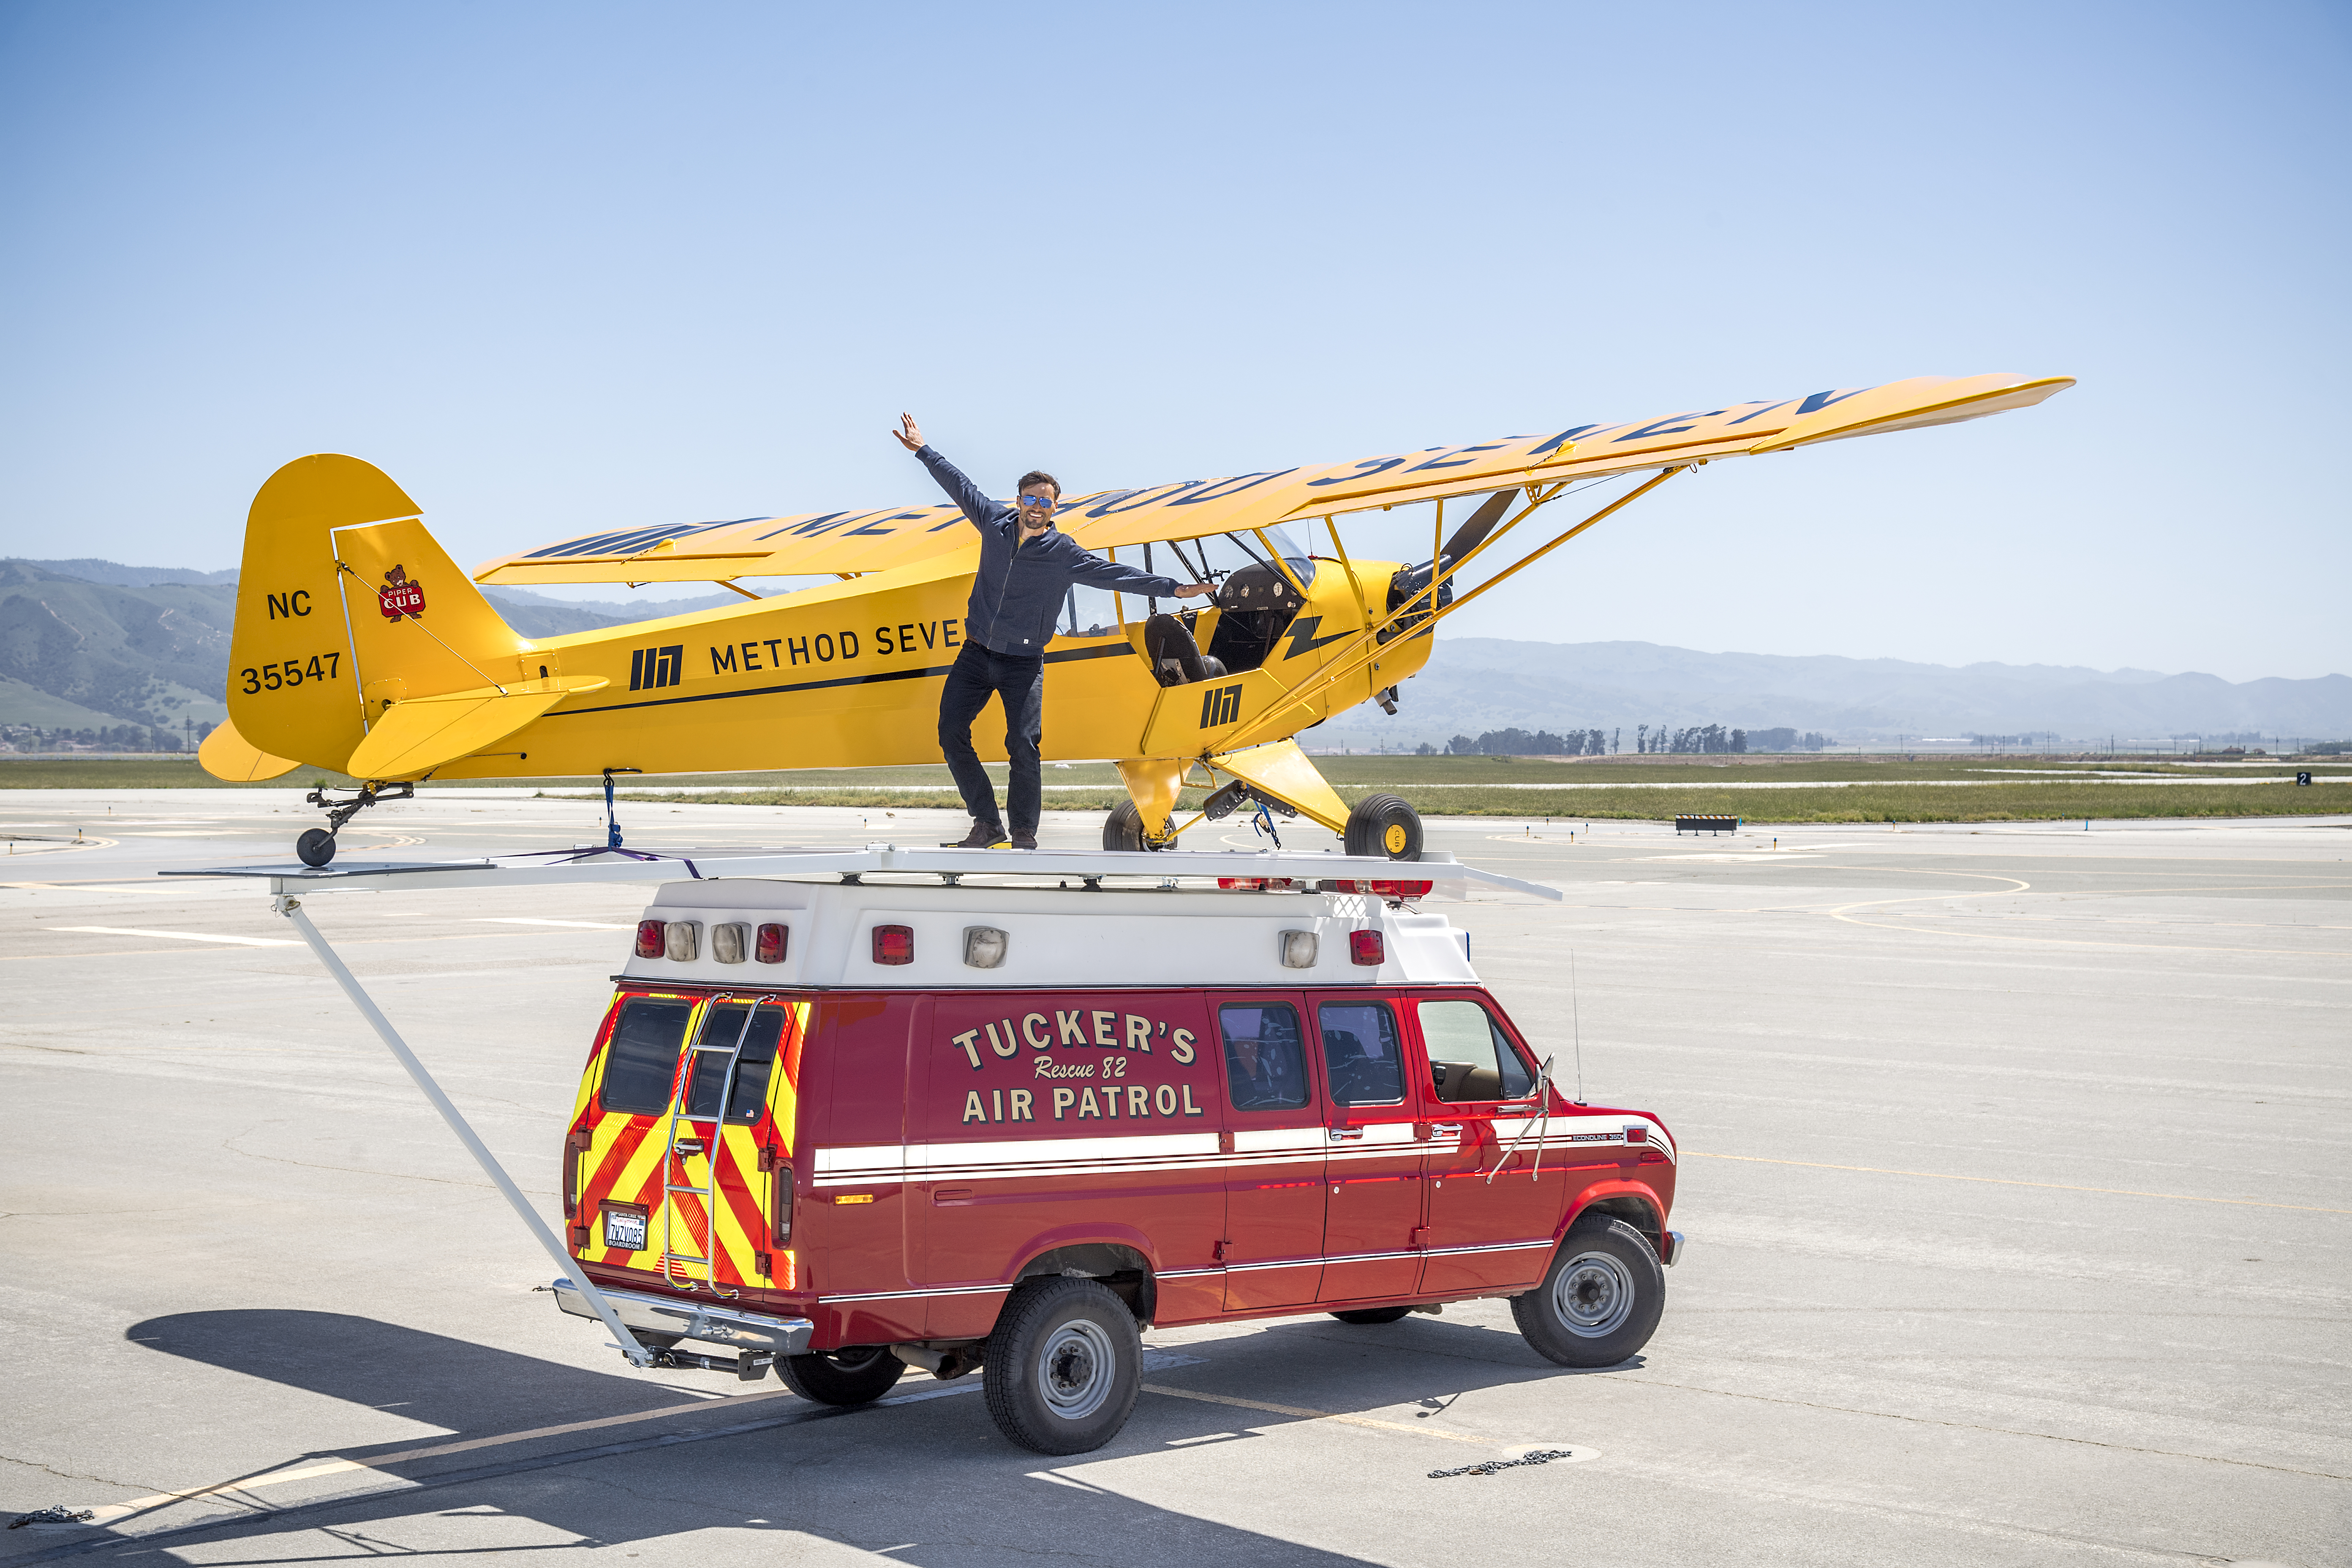 Stunt pilot Eric Tucker celebrating a successful landing.